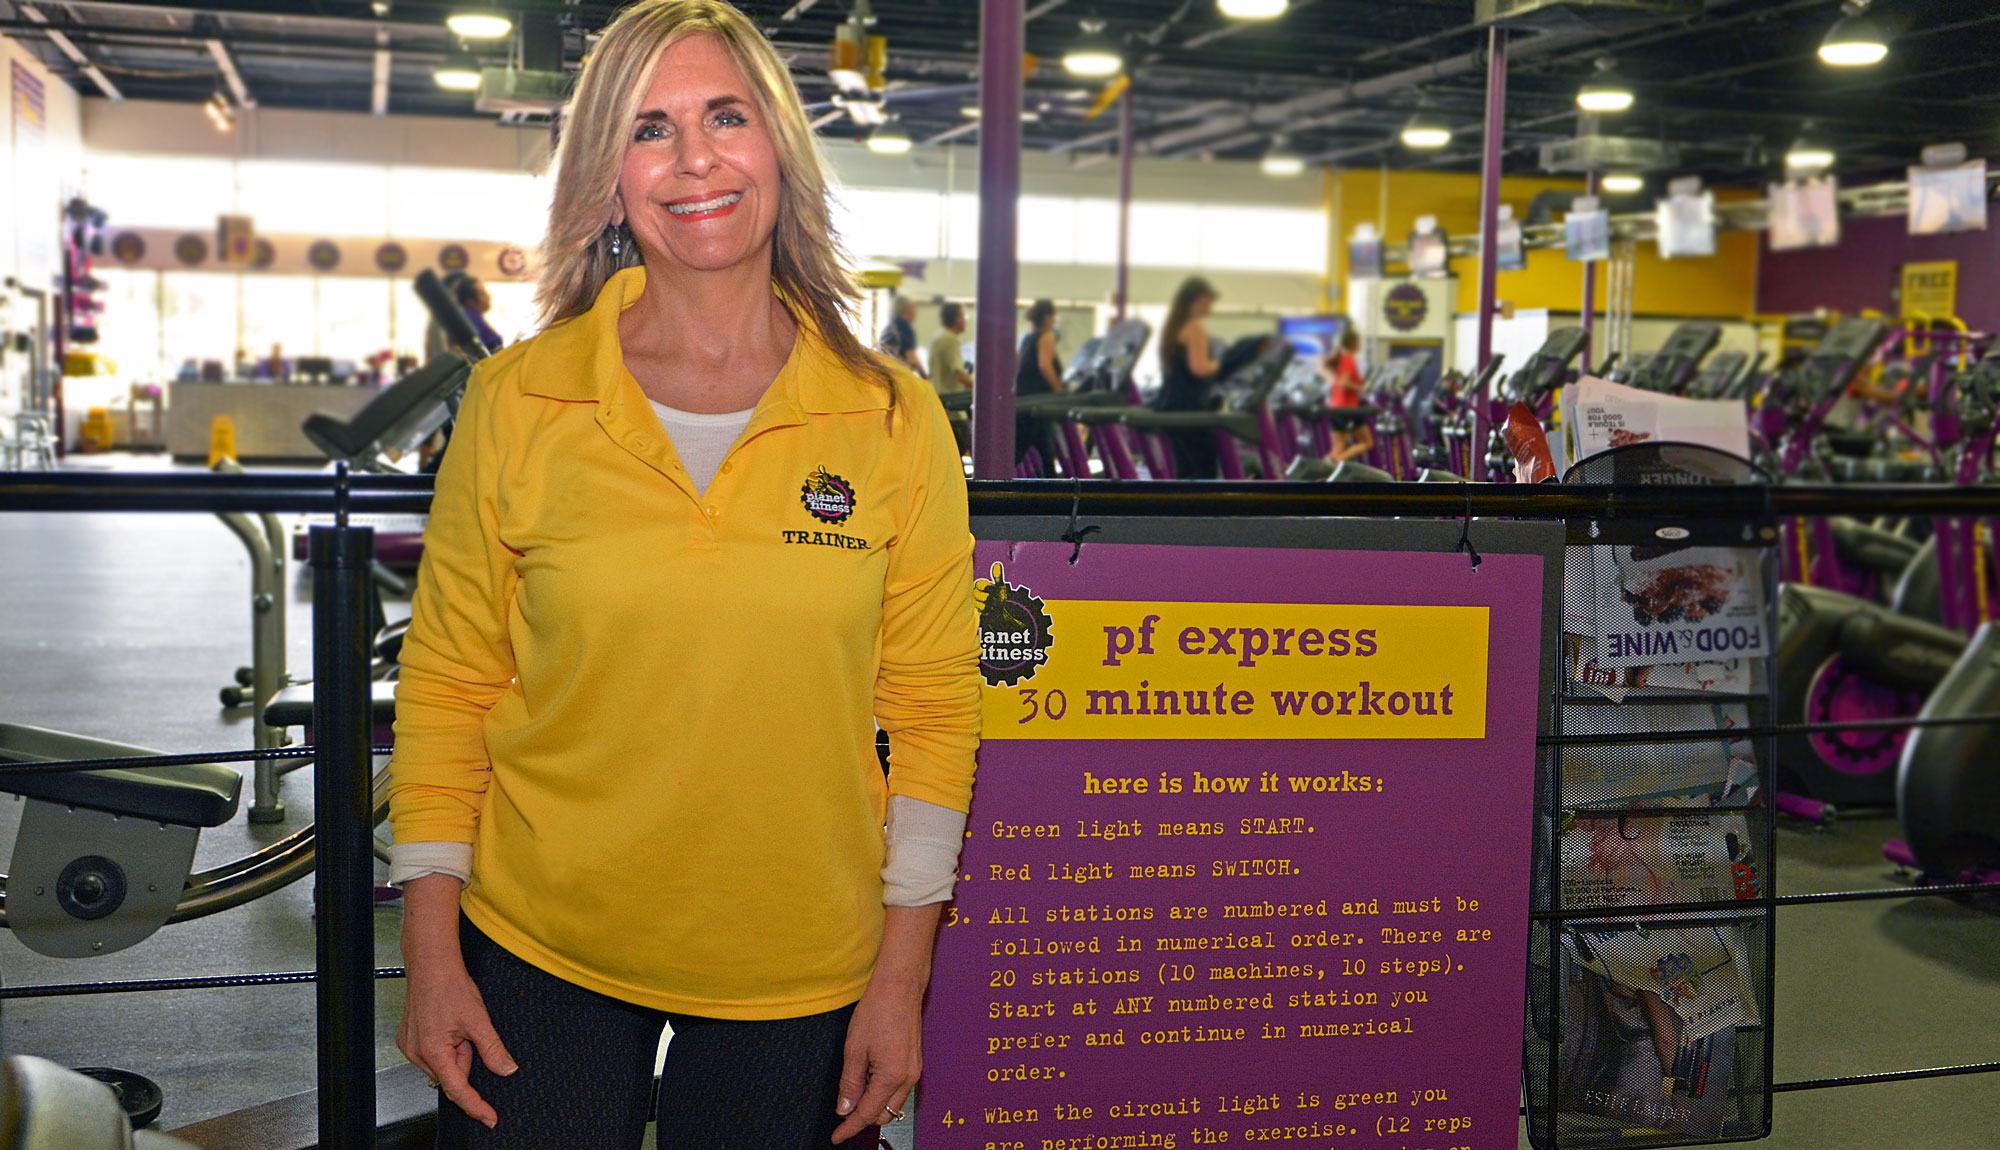 Pamela Padula, MTTI Graduate and Lead Fitness Trainer at Planet Fitness Coventry